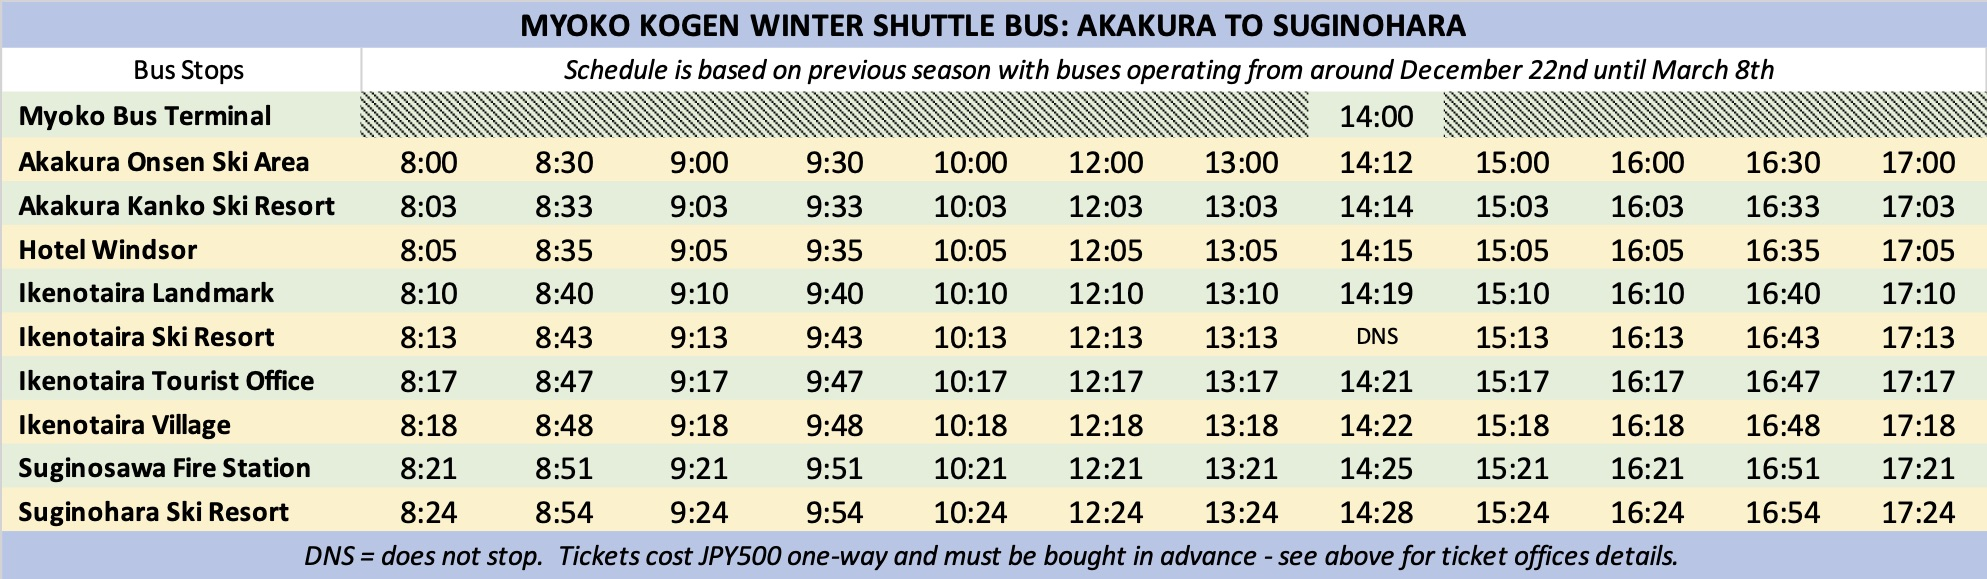 myoko-shuttle-bus-a